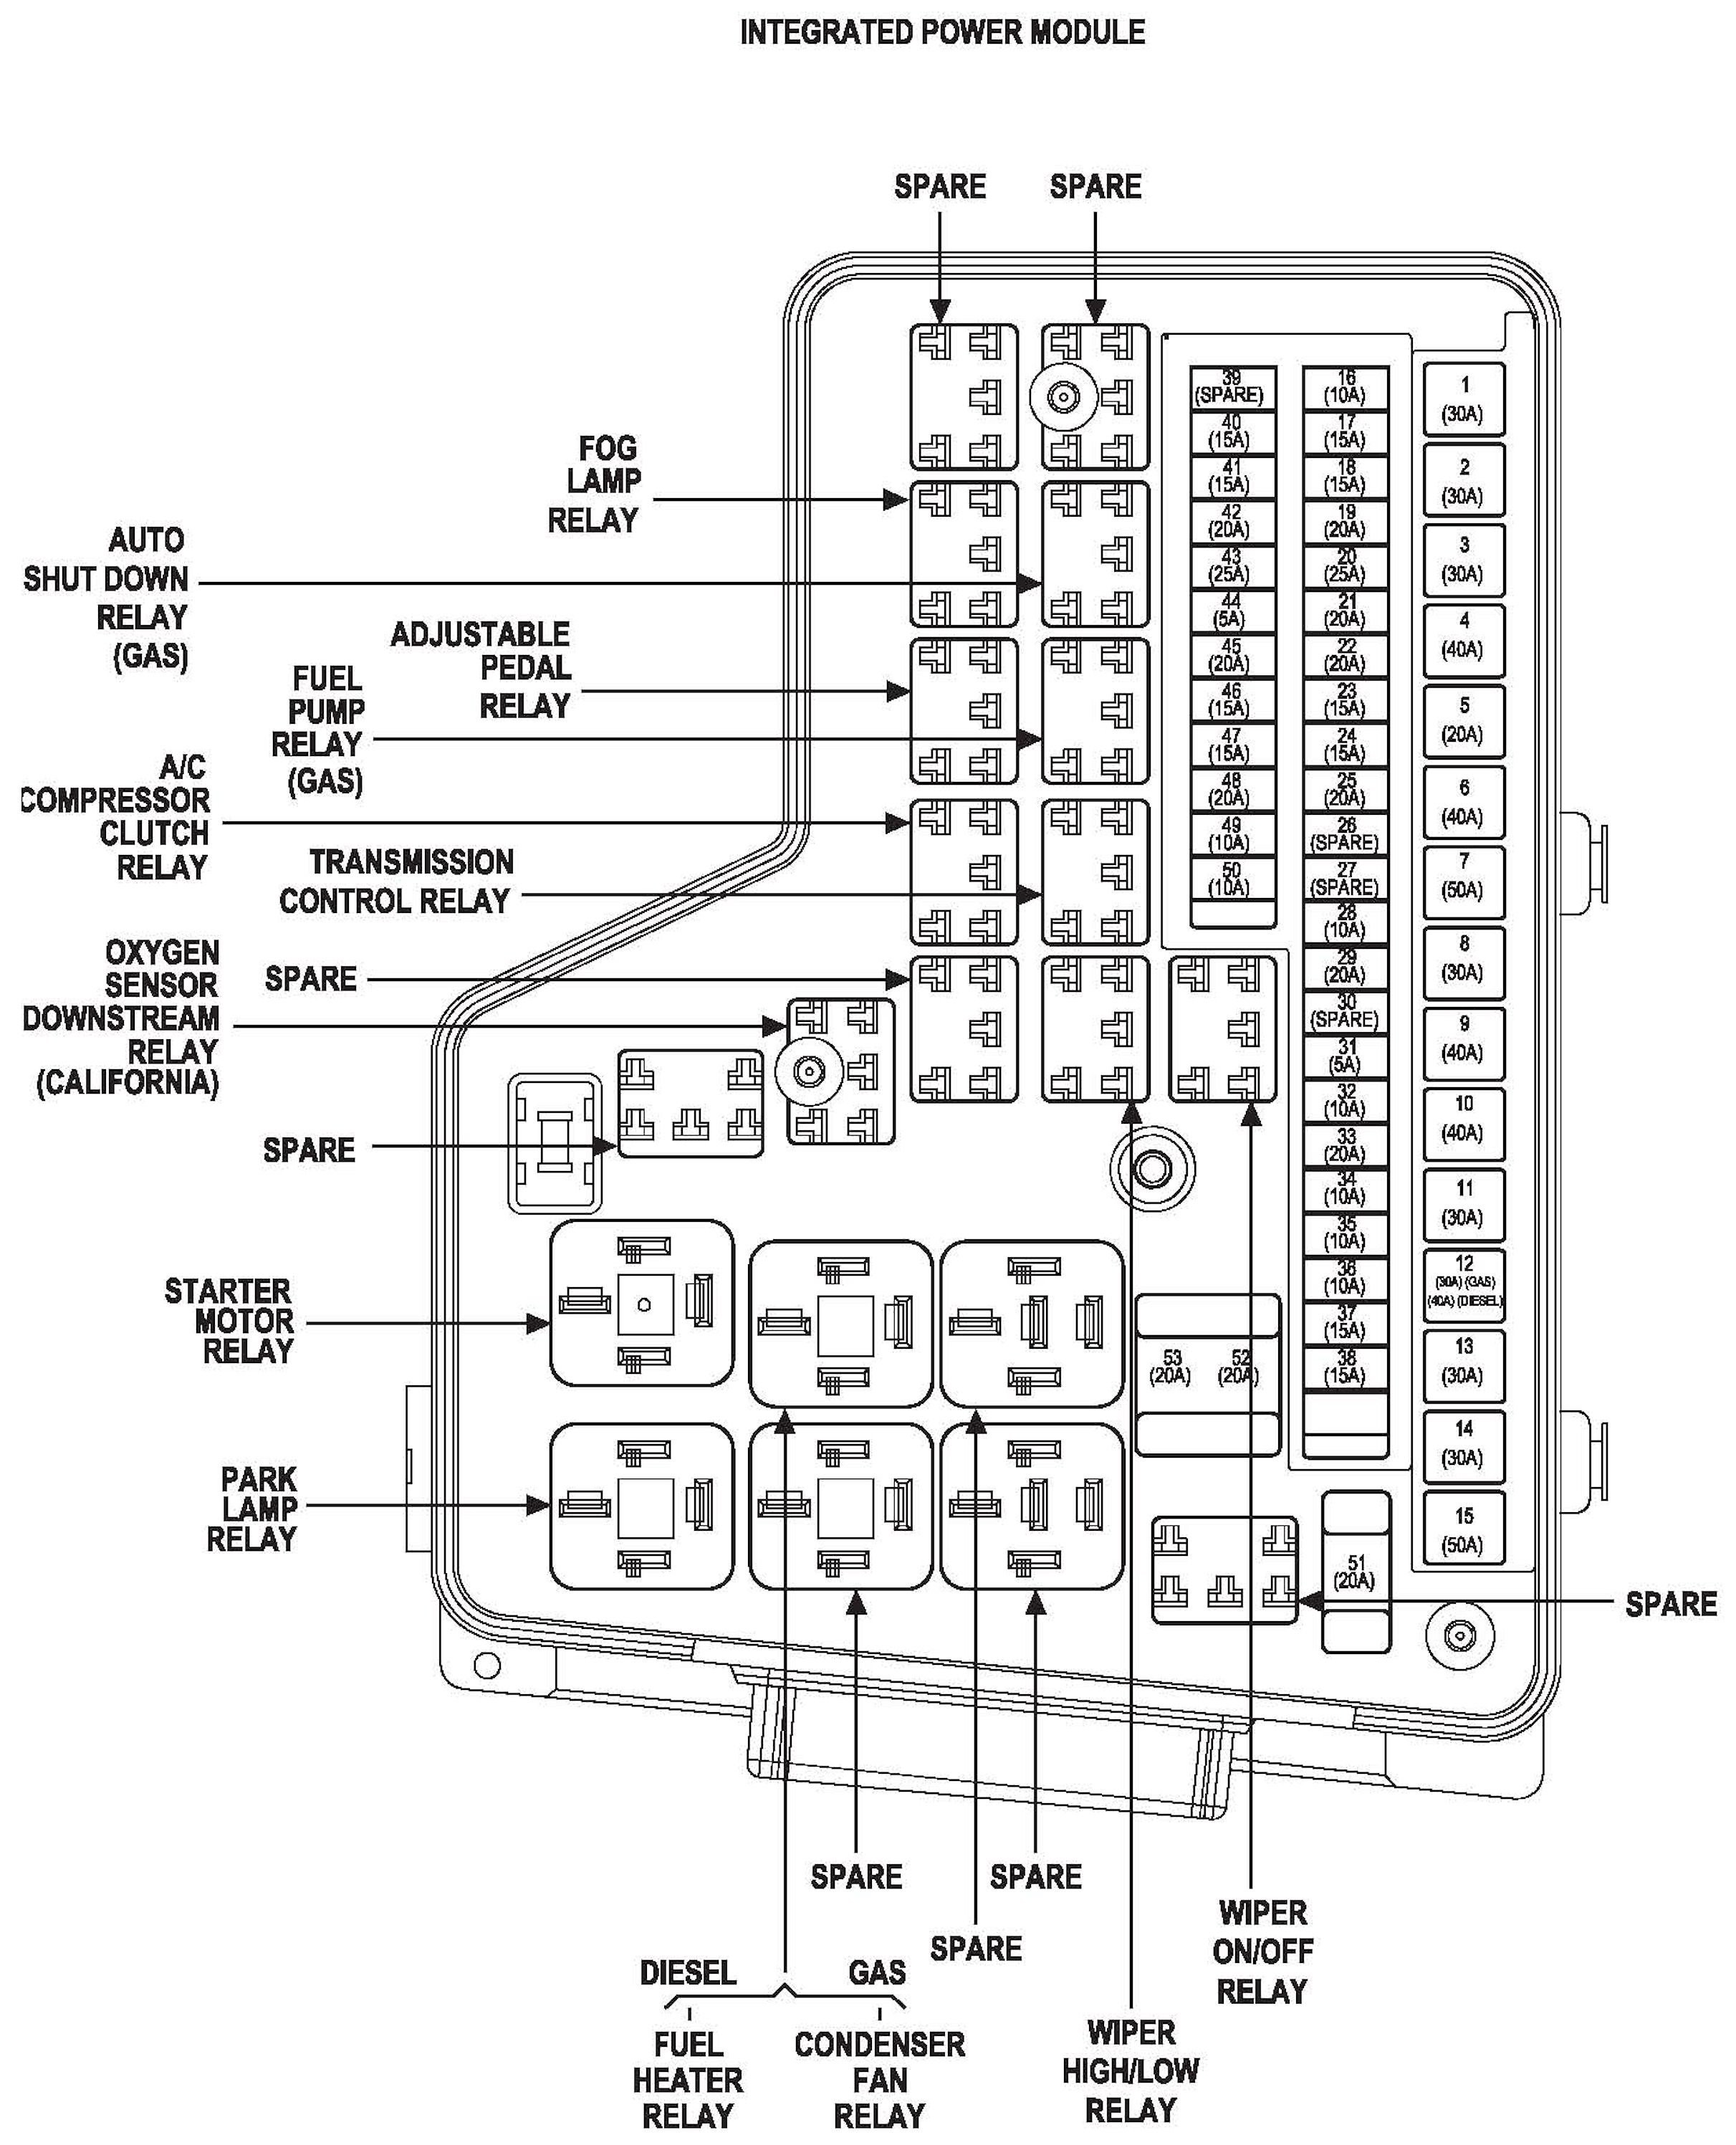 2003 Dodge Ram Wiring Diagram Fuse Box - Wiring Diagram on